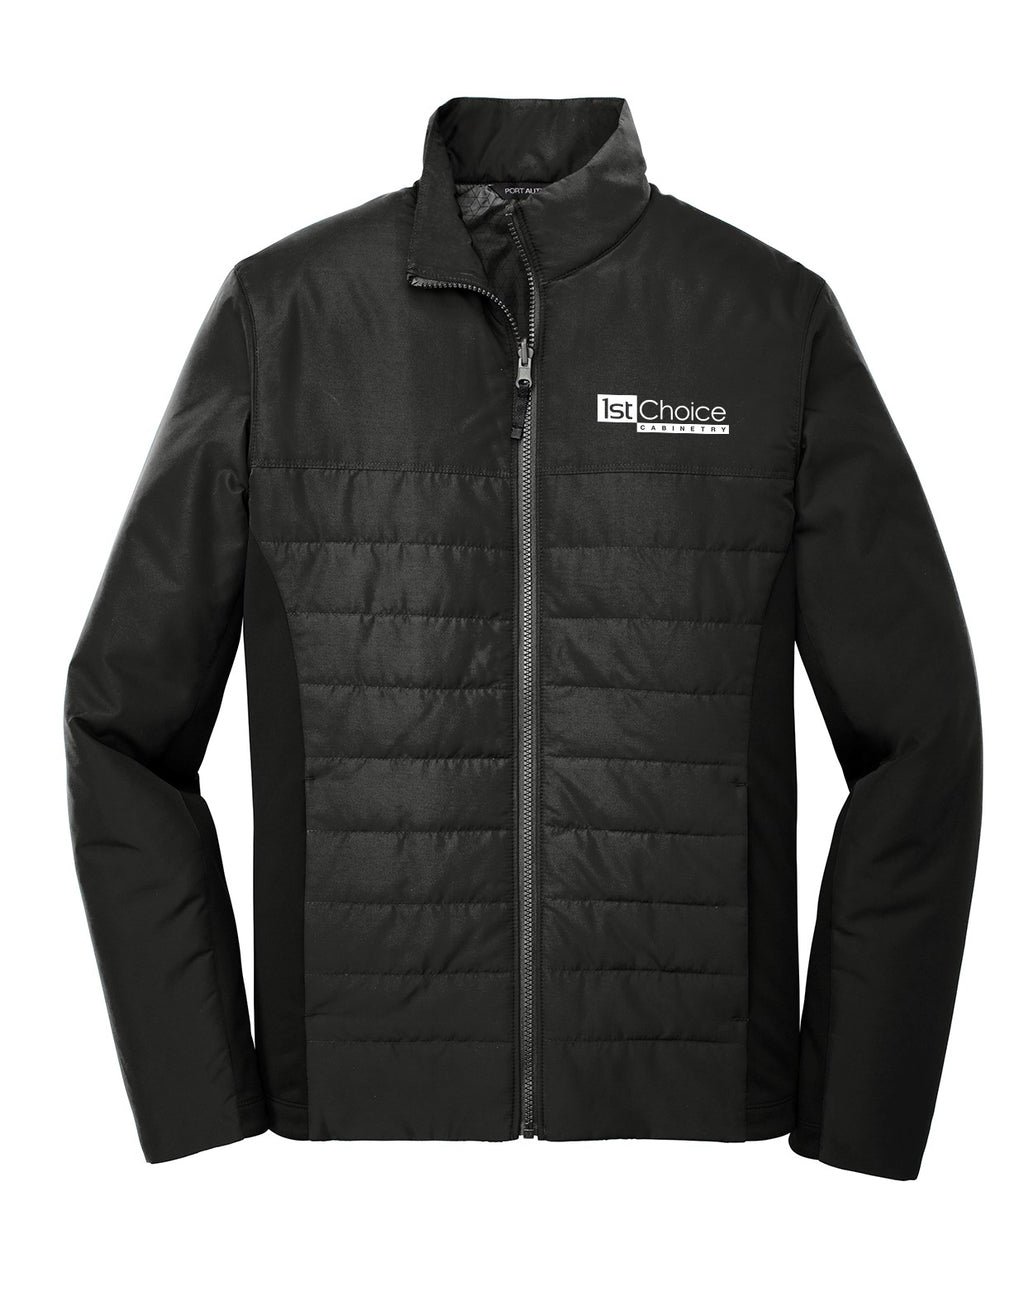 Men's Port Authority Collective Insulated Jacket